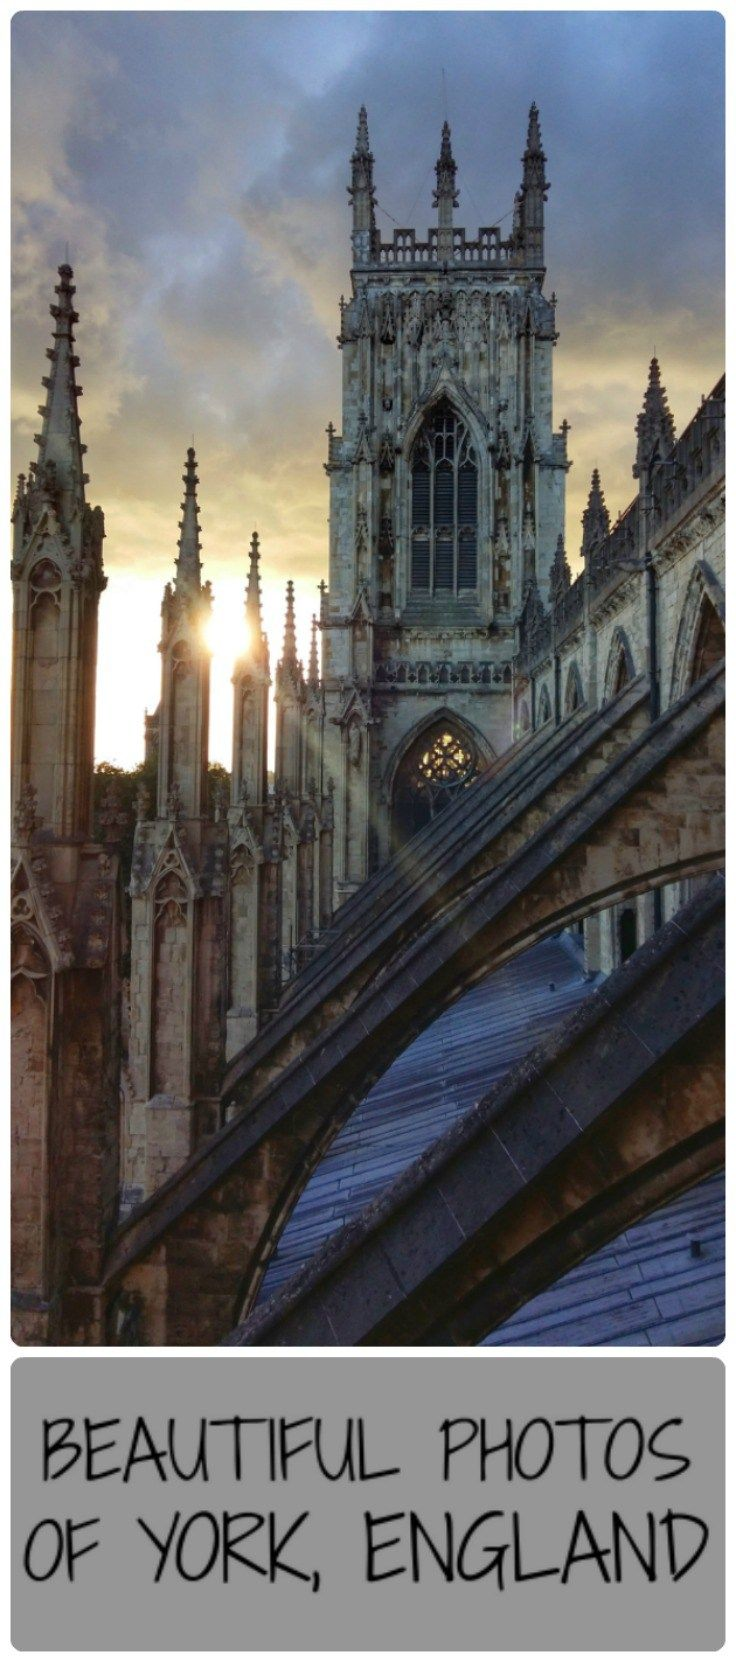 York is a beautiful historic city in the north of England, with a stunning cathedral, York Minster.  Here are some images of York to inspire you to visit the United Kingdom!